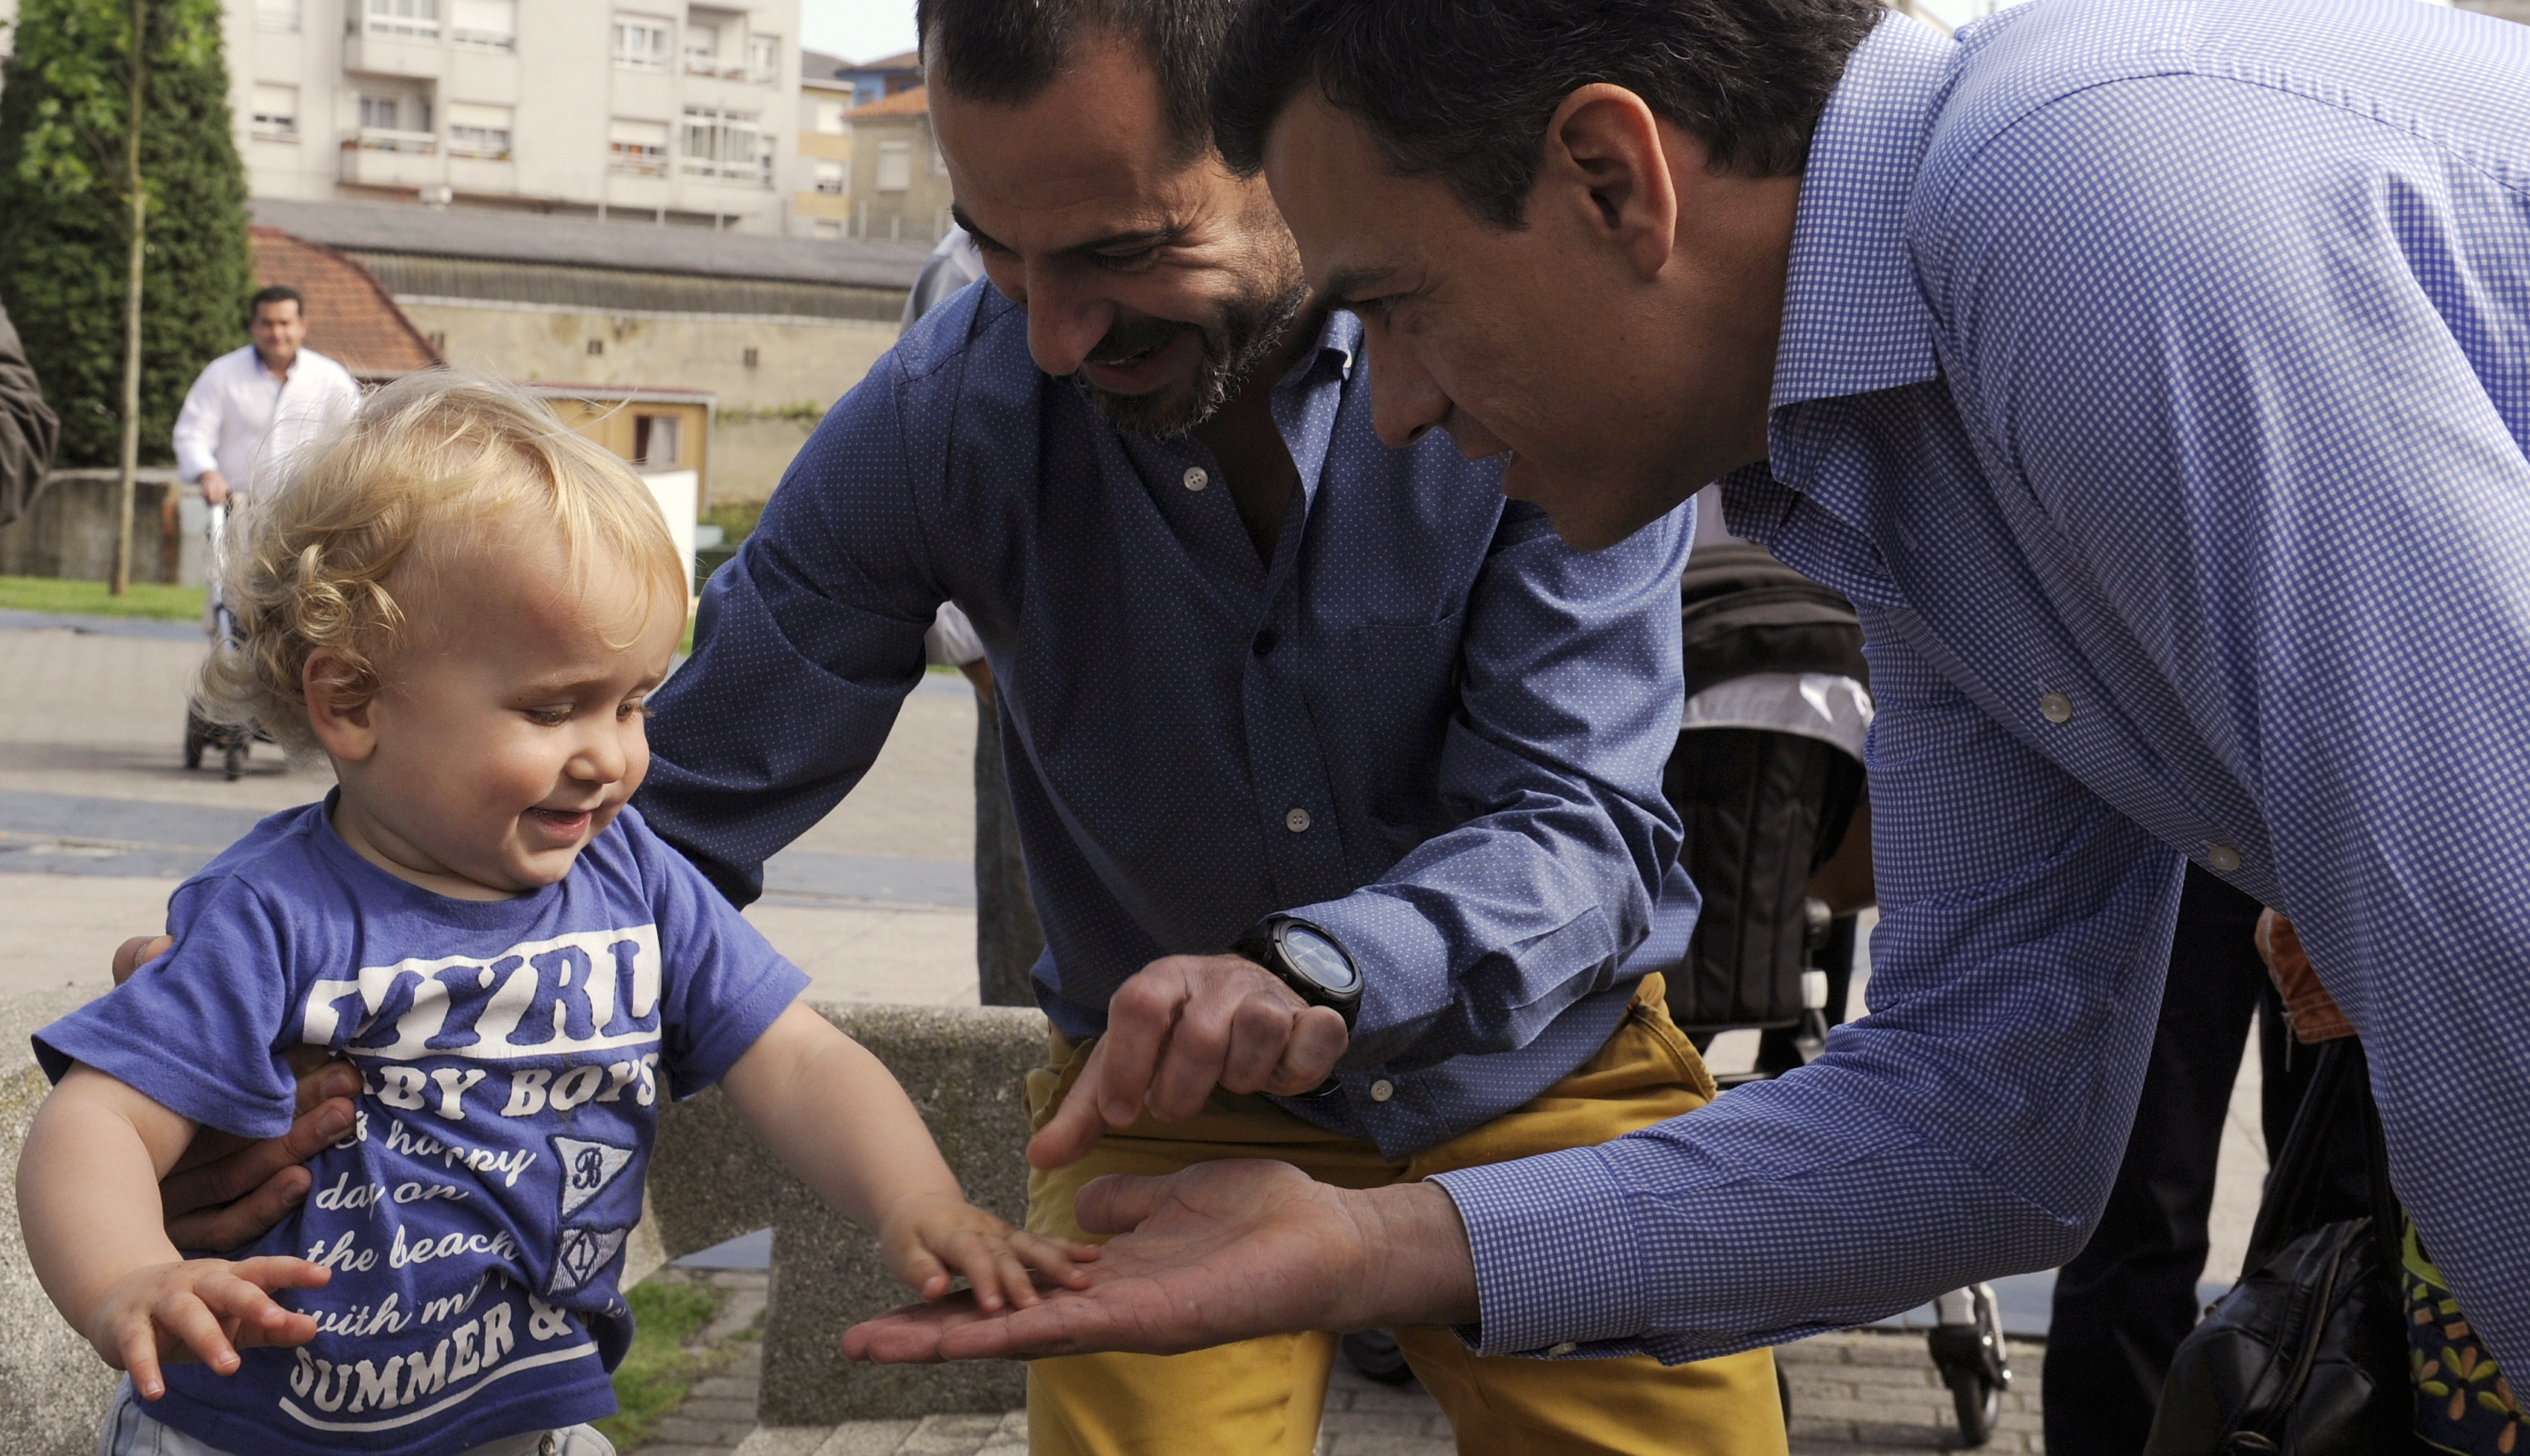 Spain's opposition Socialist Party leader Pedro Sanchez and Angel Garcia, candidate for mayor of Pola de Siero, greet a child during a walk around the village of Lugones, northern Spain